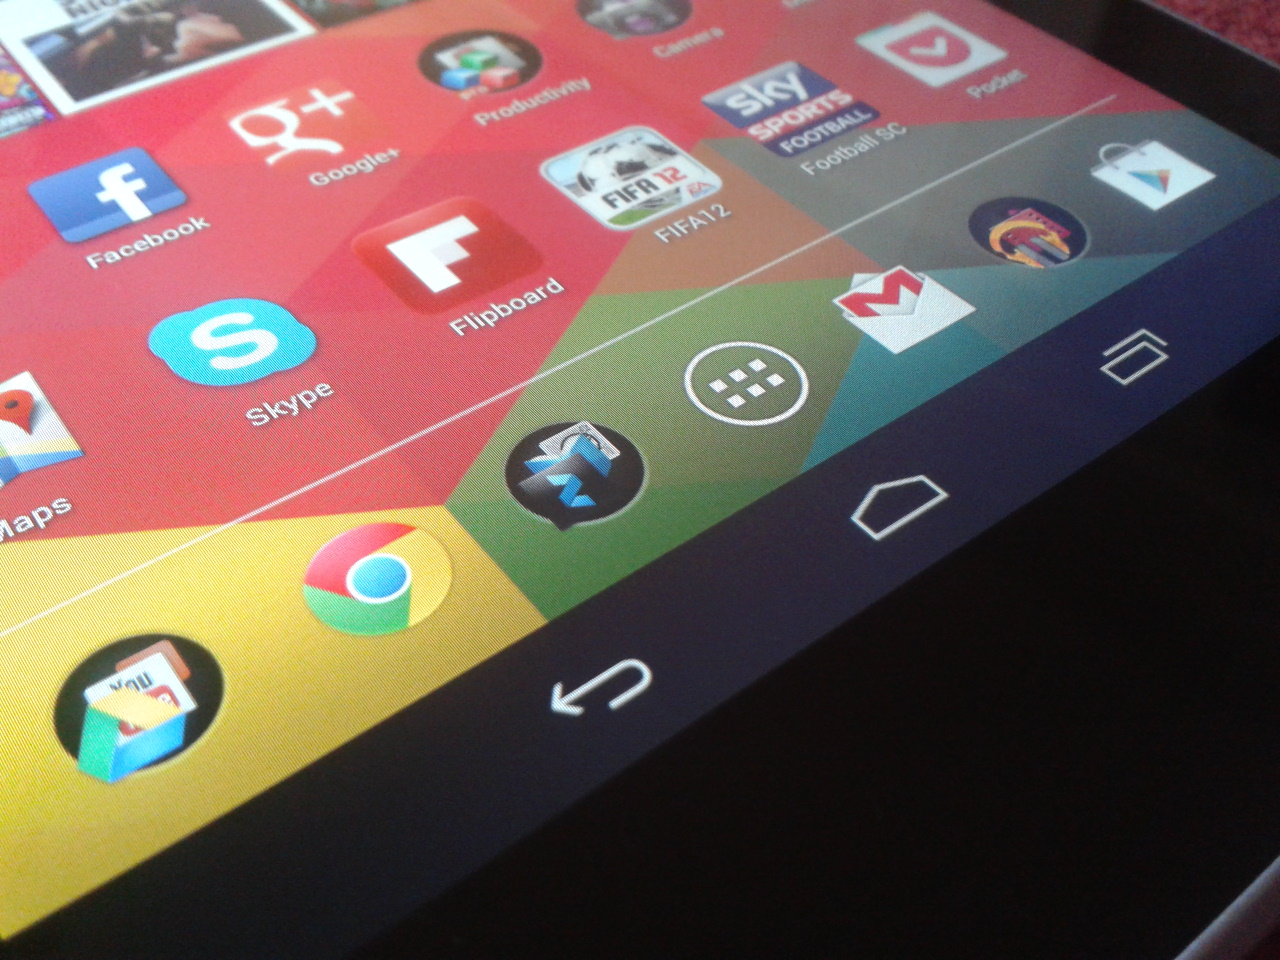 Dock icons in Android 4.2